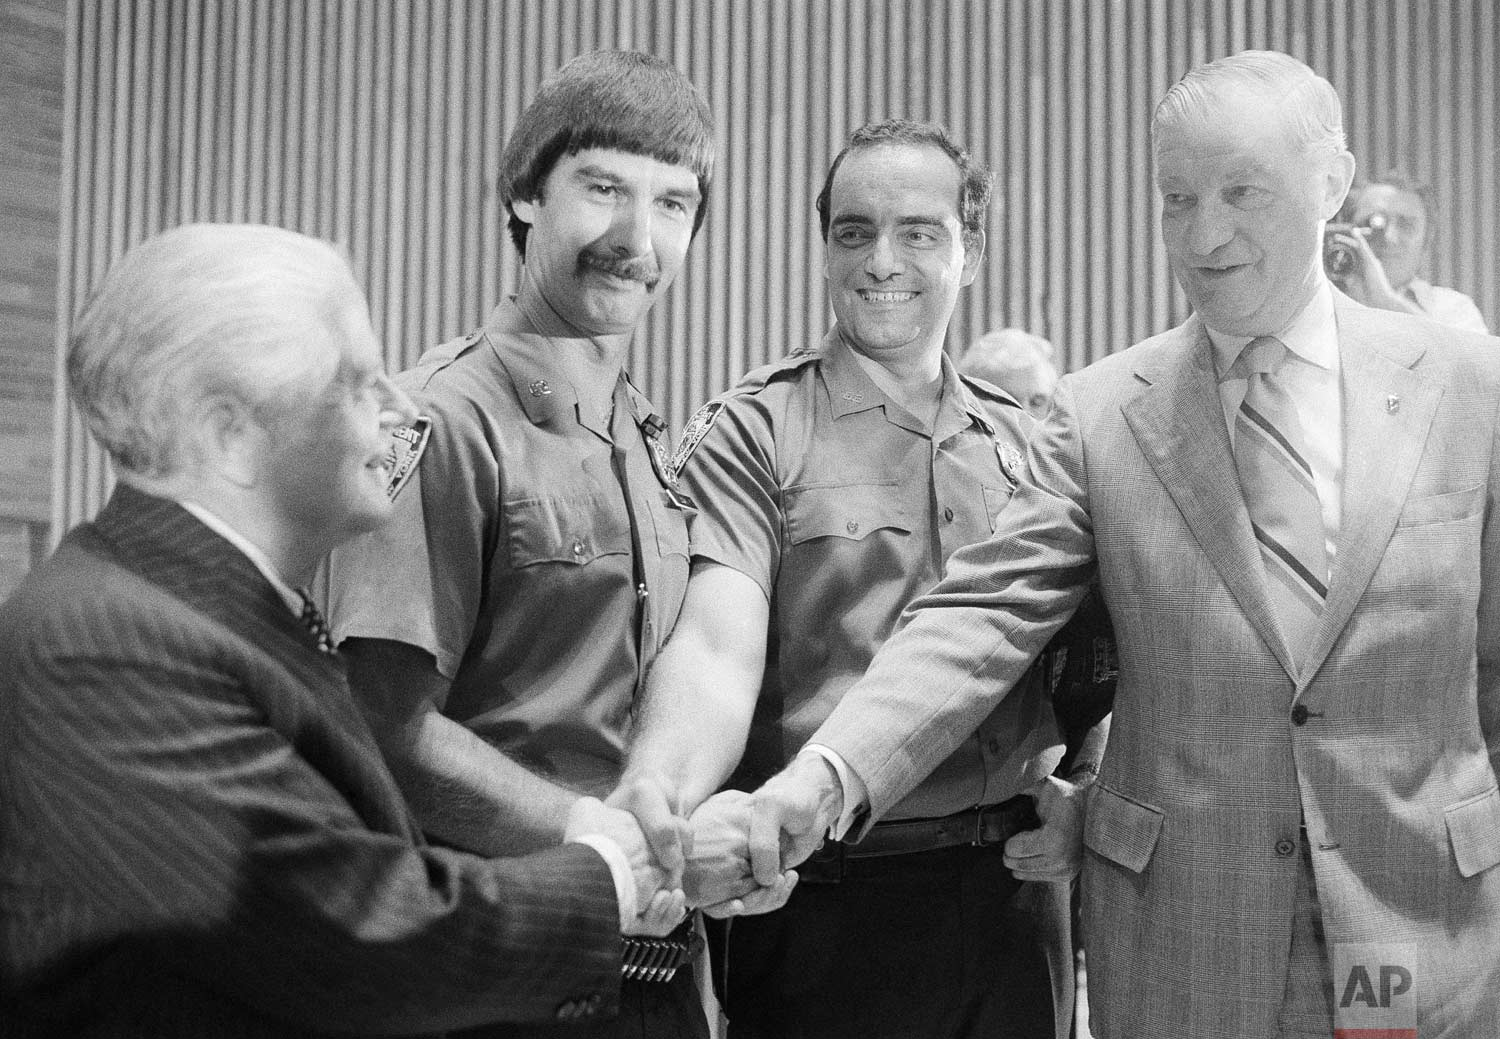 "New York Mayor Abraham Beame, left, and police commissioner Michael Codd, right, shake hands at Police Headquarters, Thursday, Aug. 11, 1977 with officers Jeffrey Logan, second from left, and Michael Cataneo. A parking ticket issued by the two officers to a car at the site of the "".44 Caliber Killer's"" last shooting led police on Wednesday night to the home of a suspect police believed to be the ""Son of Sam"" gunman. (AP Photo/Dave Pickoff)"